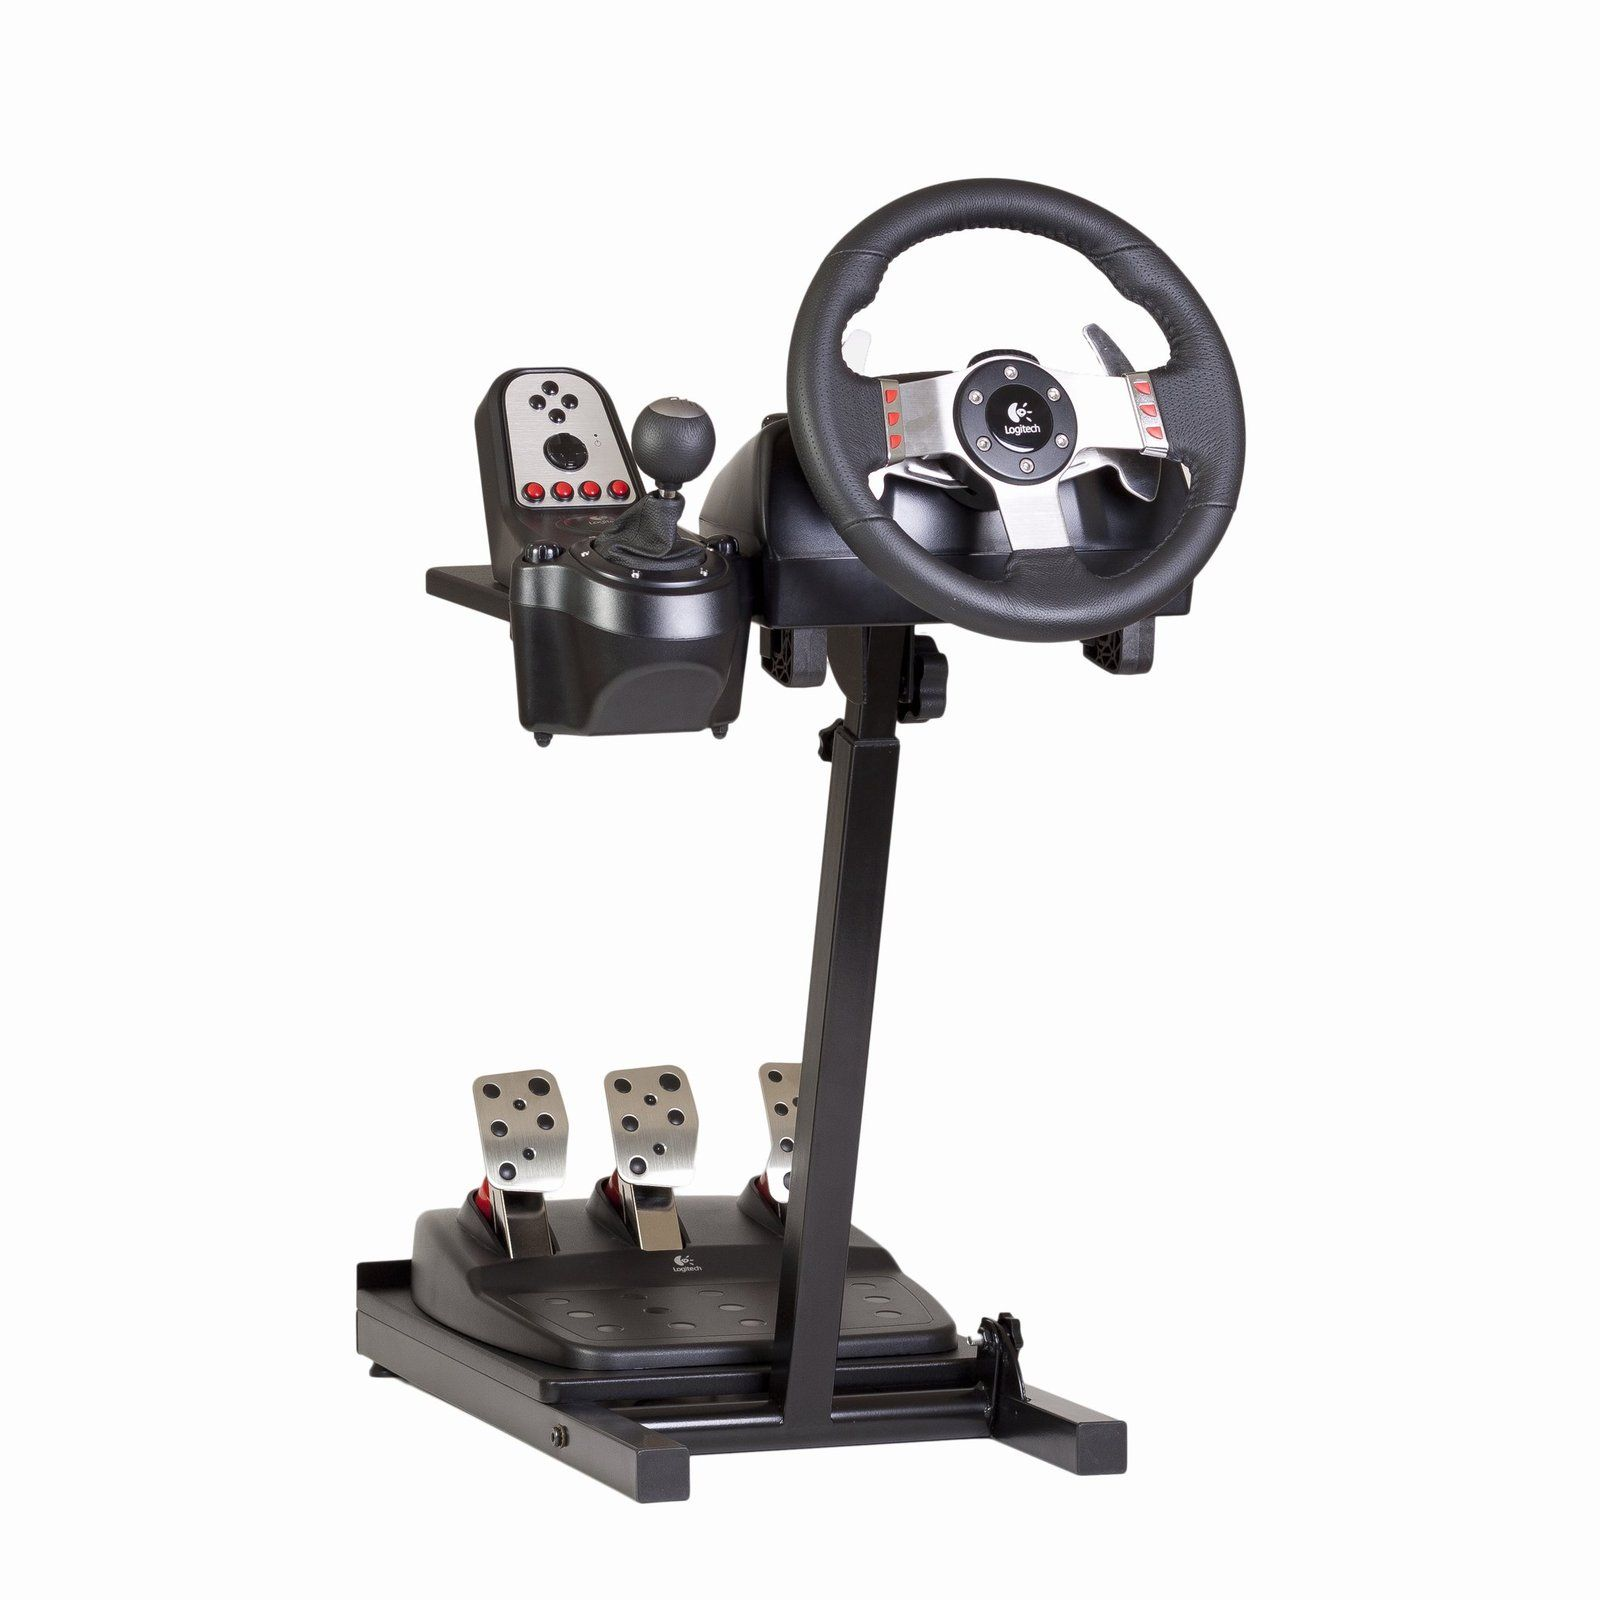 The Ultimate Gaming Wheel Stand for the PS3 PS4 the Xbox and the